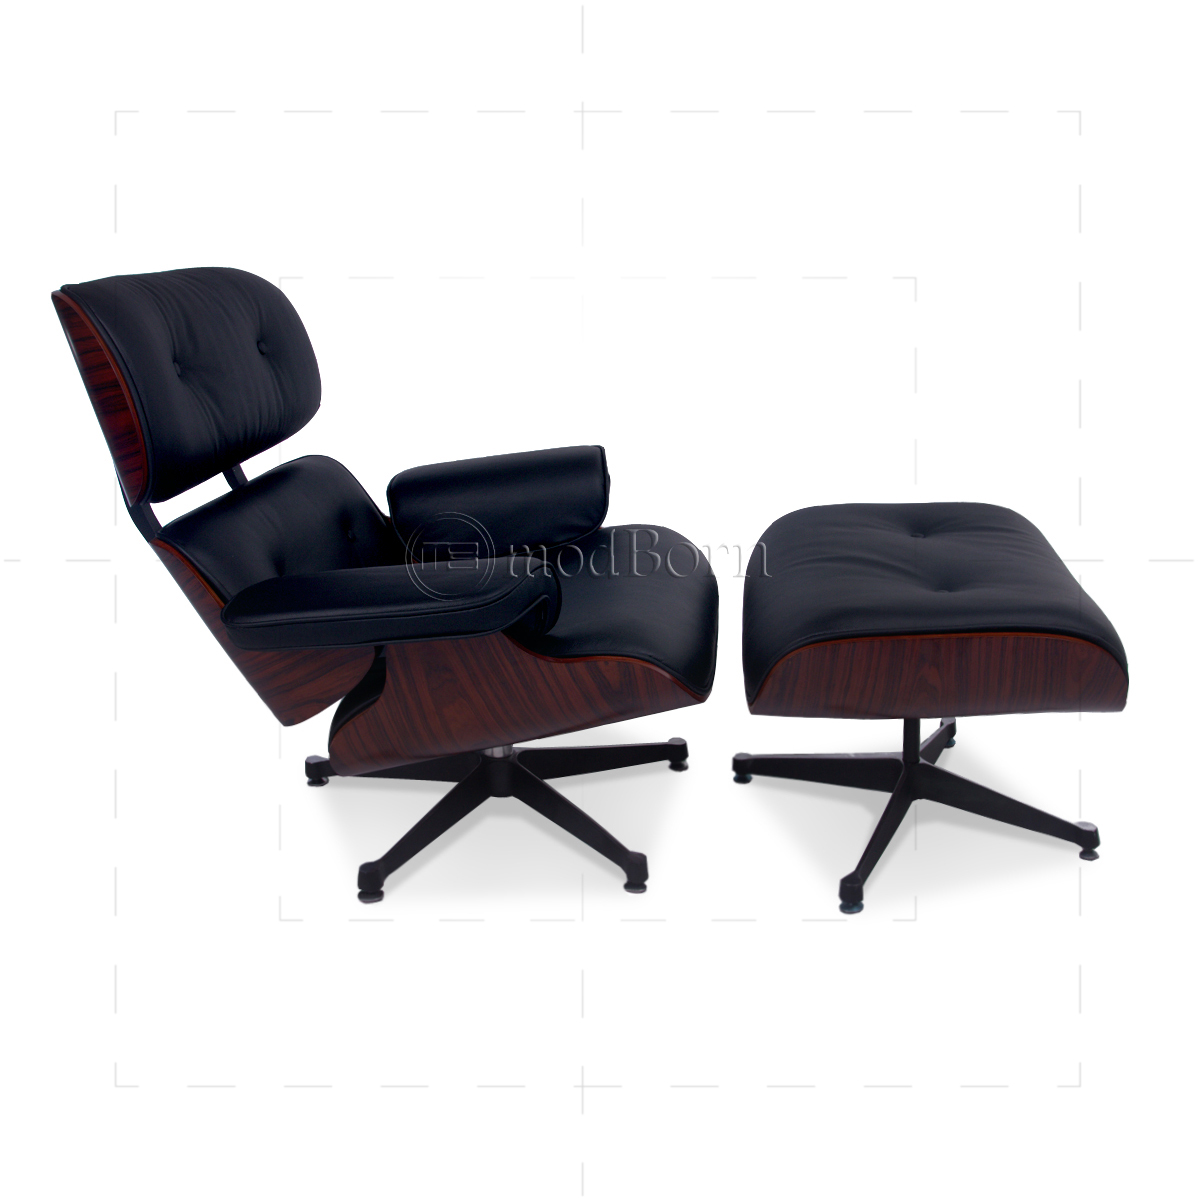 Eames style lounge chair and ottoman black leather for Eames chair replica uk